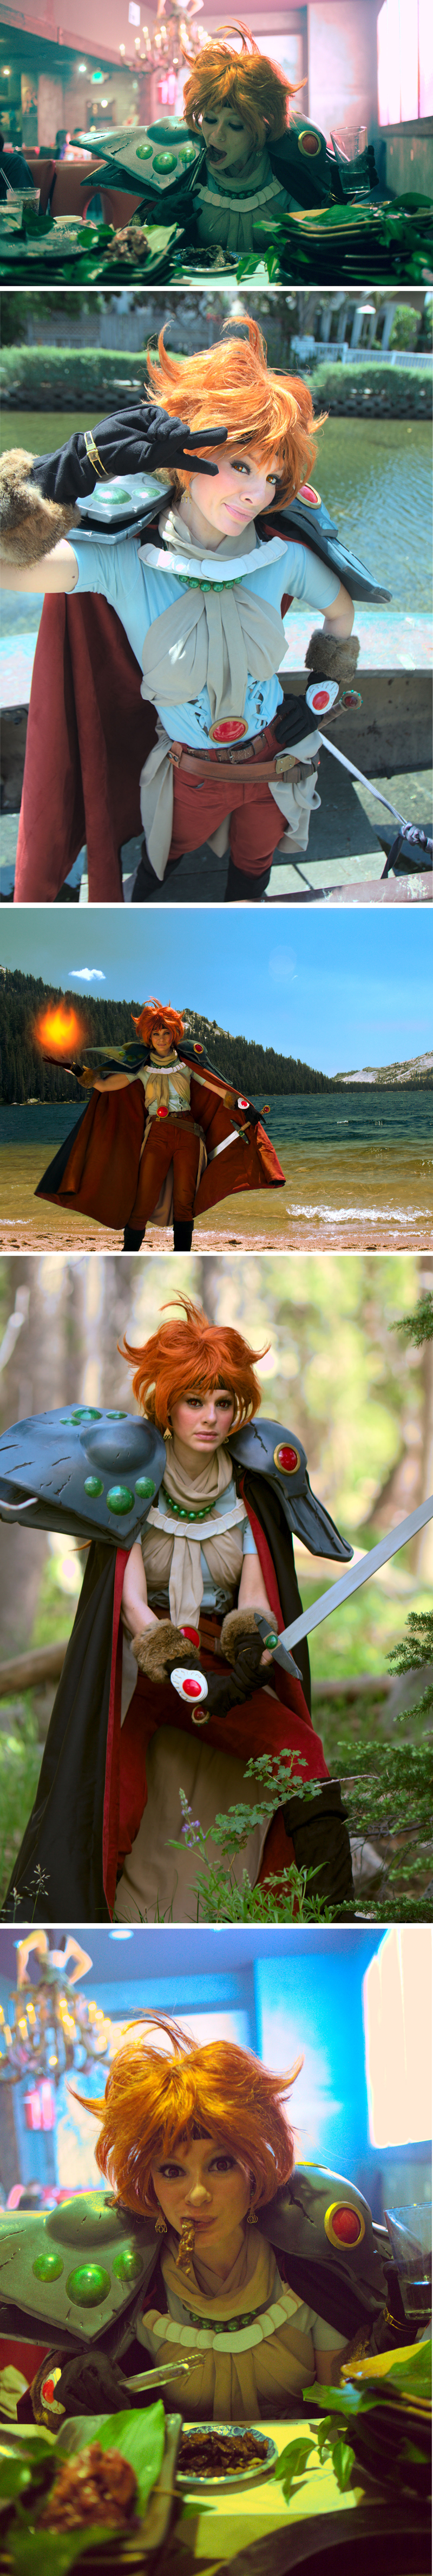 LINA INVERSE Slayers Artbook Cosplay by neoqueenhoneybee